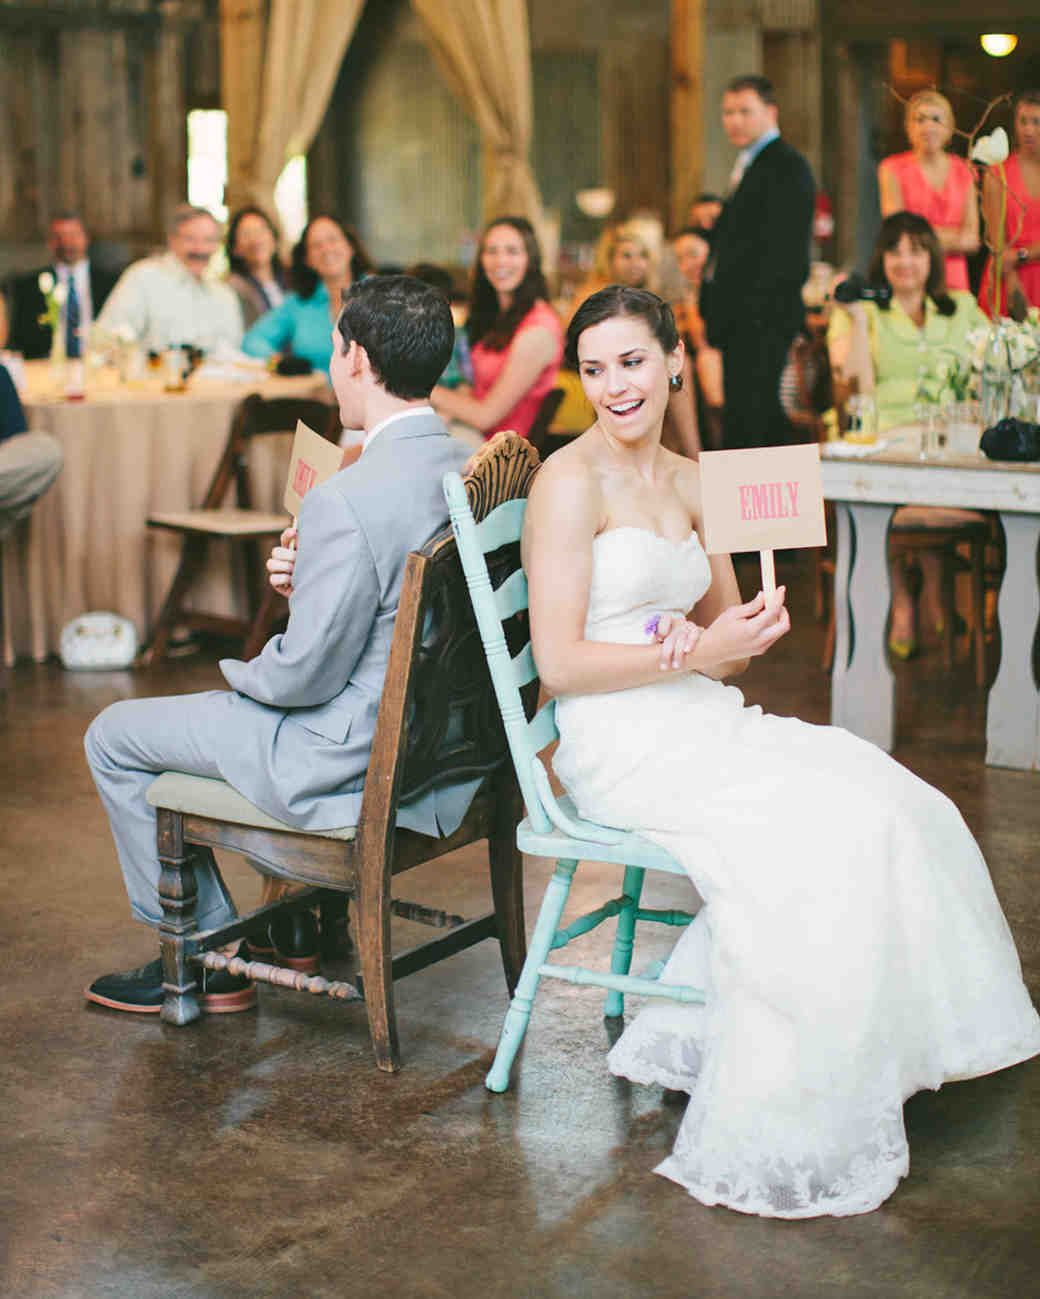 10 Conversations You Need To Have Before You Get Married Fun Wedding Games Wedding Games Wedding Games For Guests